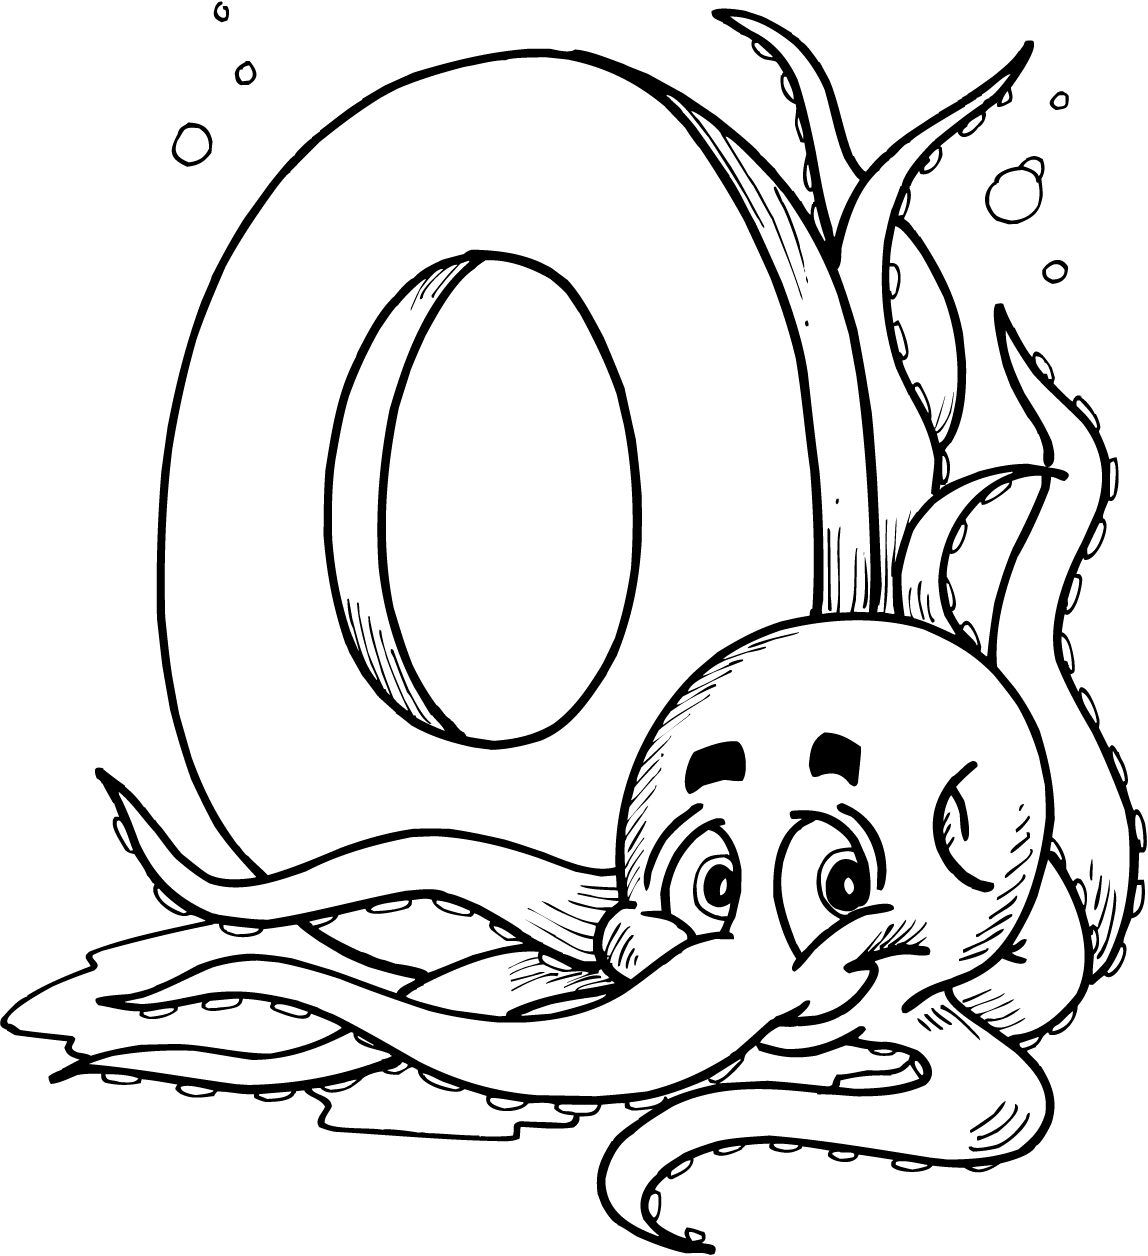 letter o colouring sheets letter o coloring pages printable for kids letter sheets o colouring